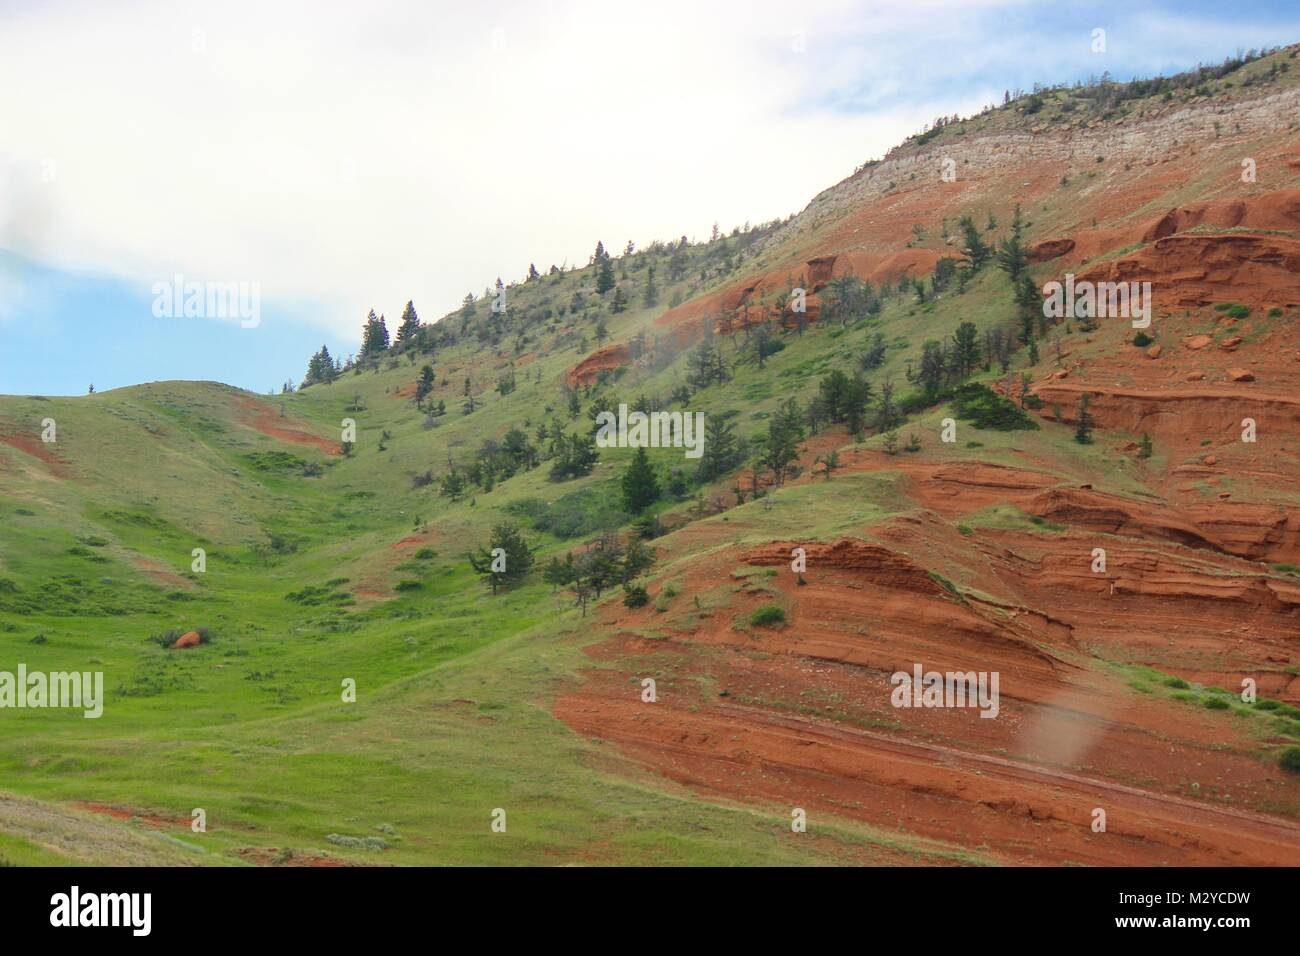 Red Bluff - Stock Image